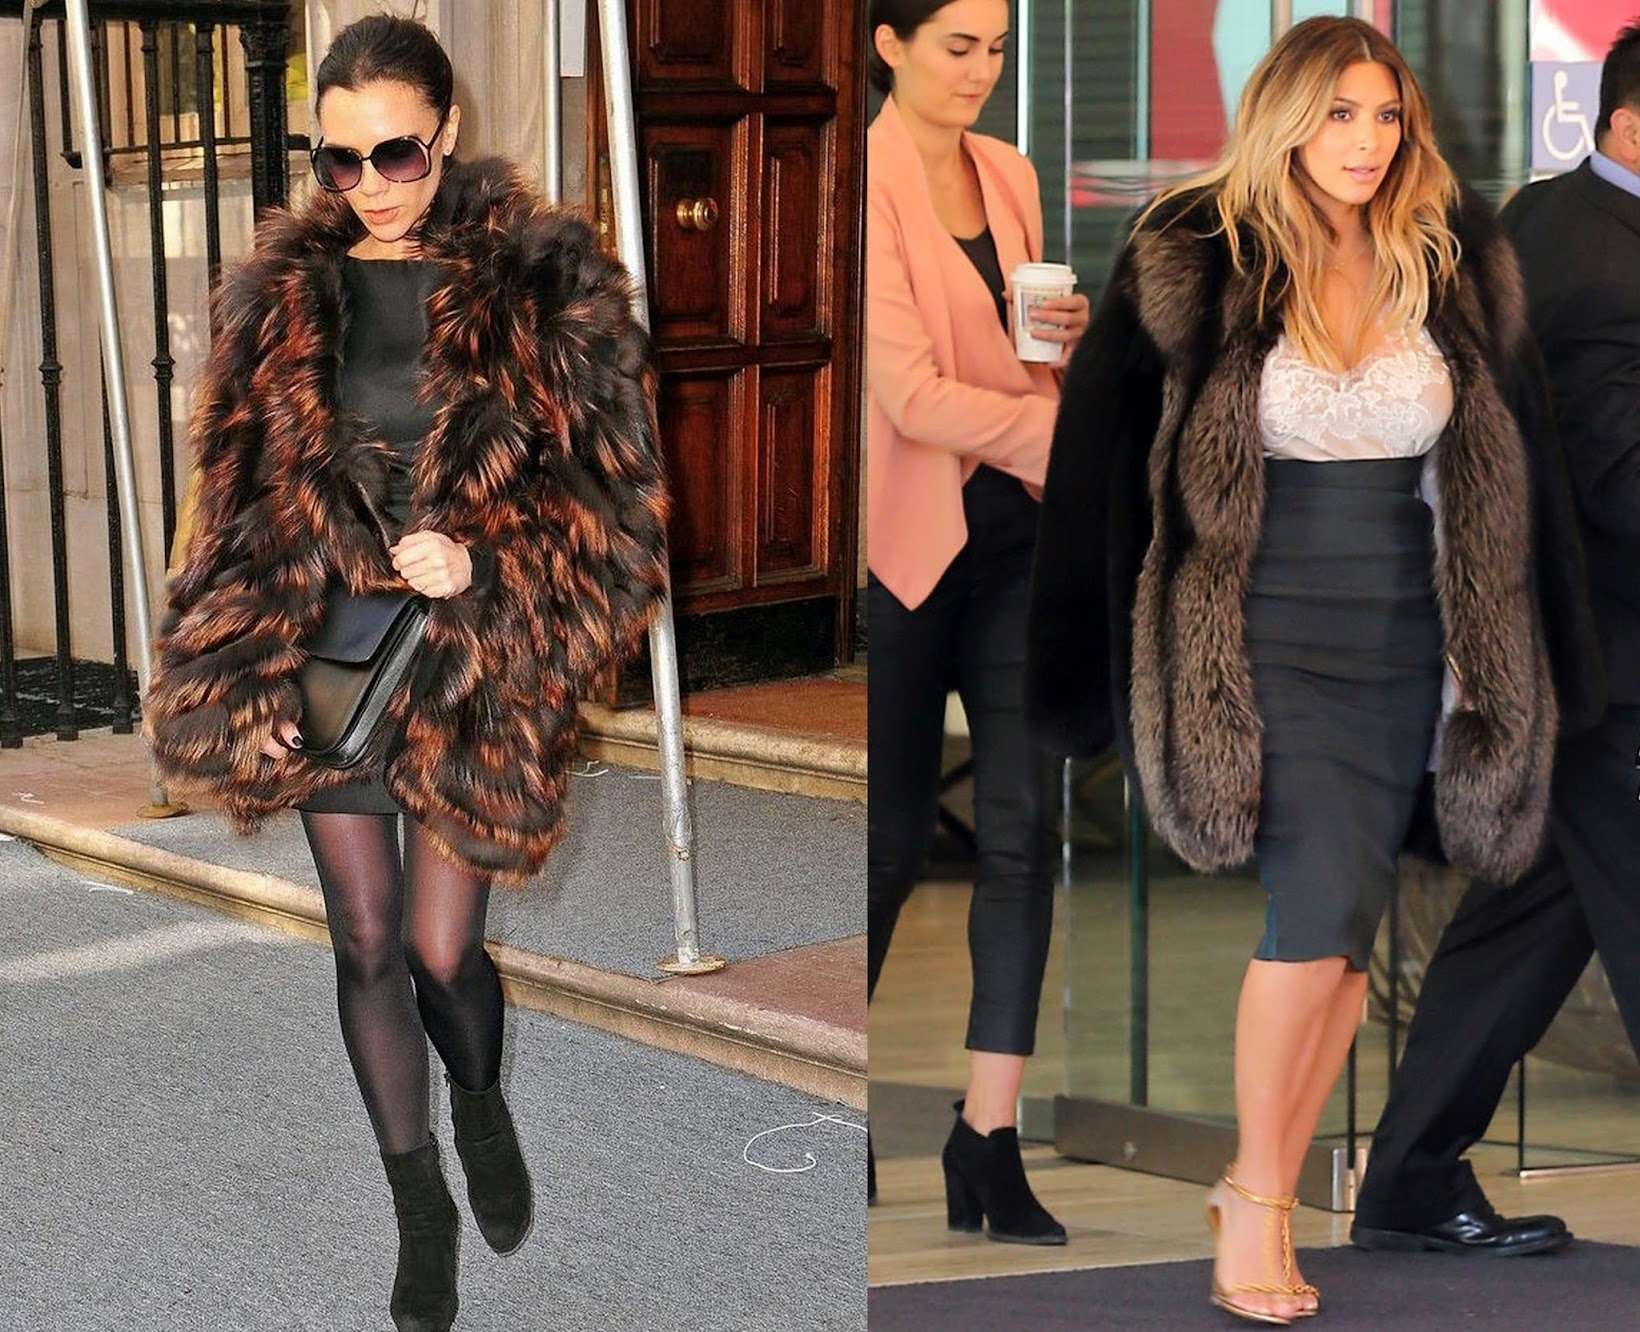 Faux Fur for autumn/winter, affordable faux fur coats online, Kim Kardashian in faux fur, Victoria Beckham, wholesalebuying.com, Indian fashion blogger